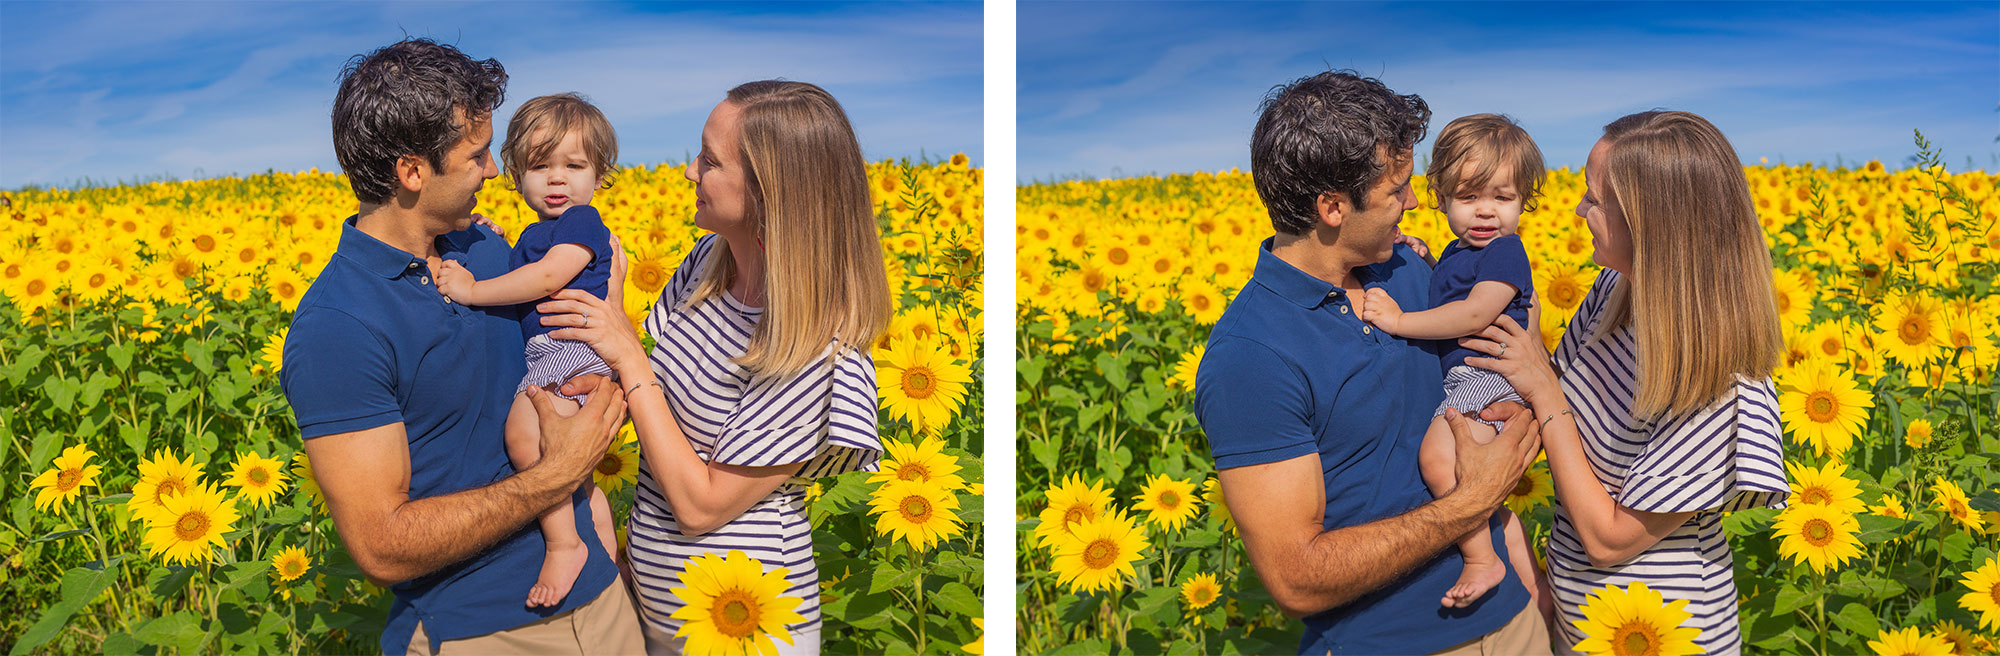 colby-farm-sunflowers-family-portraits-stephen-grant-photography-010.jpg